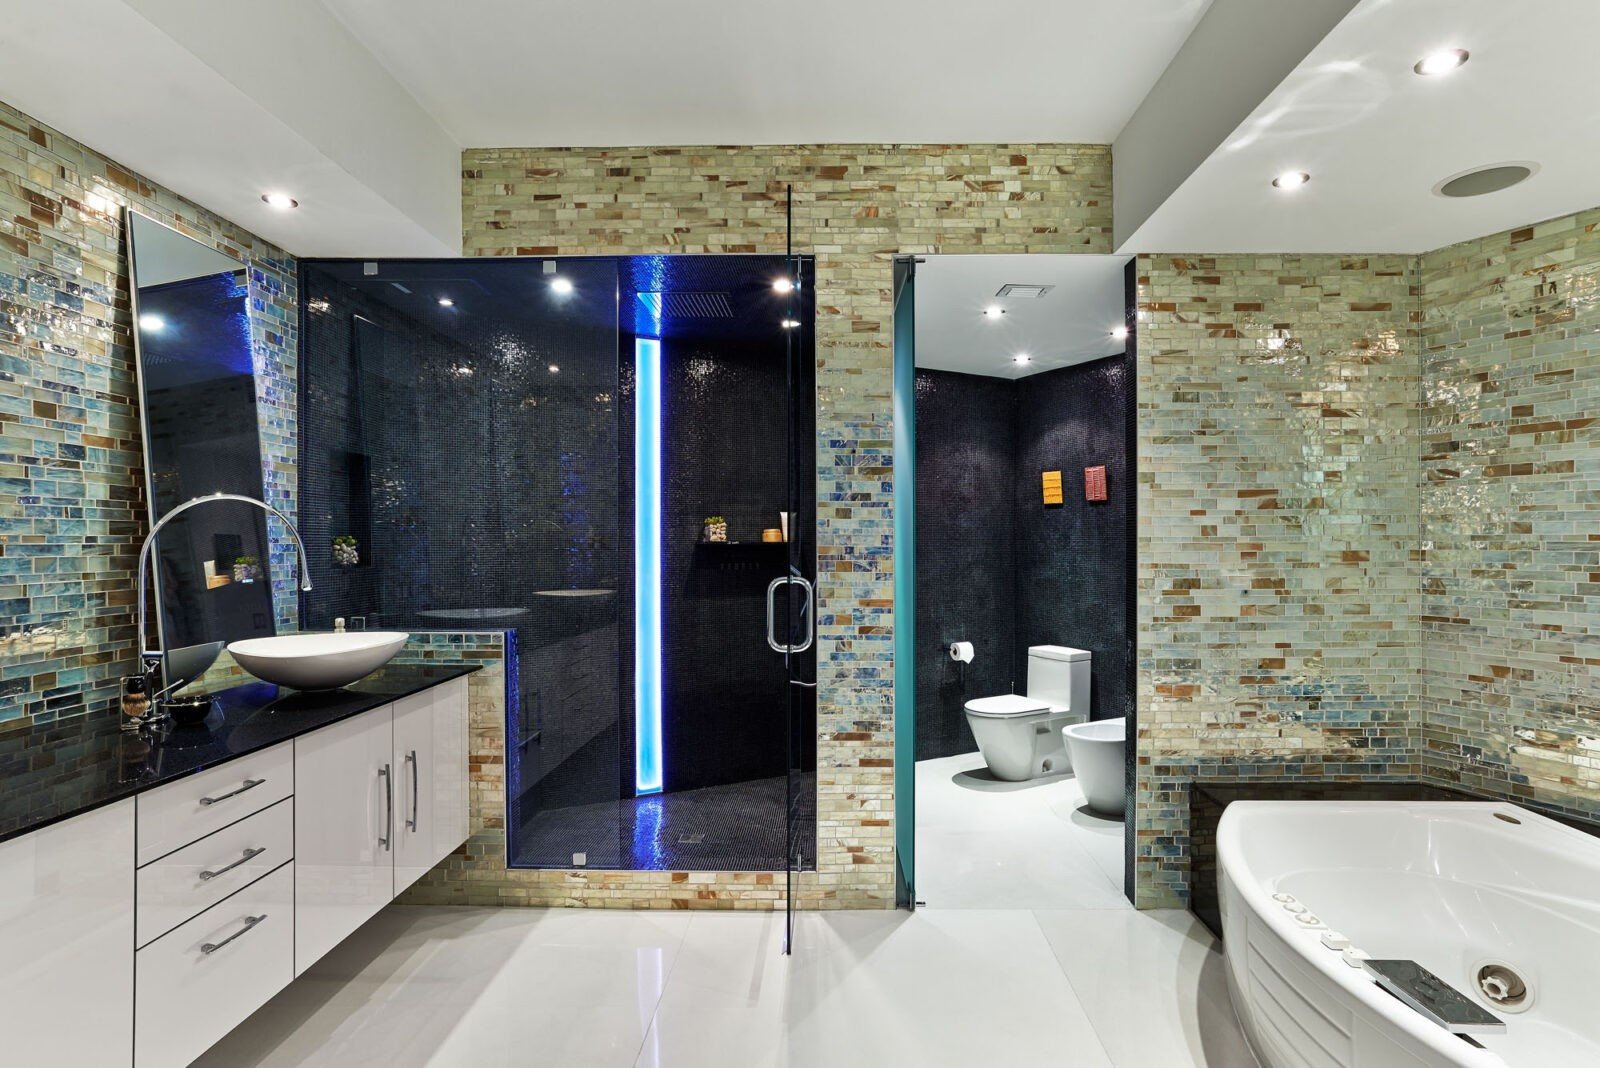 Mater bathroom with Metropolis Opal Mosaic Tile Walls by Granite Transformations/Trend.